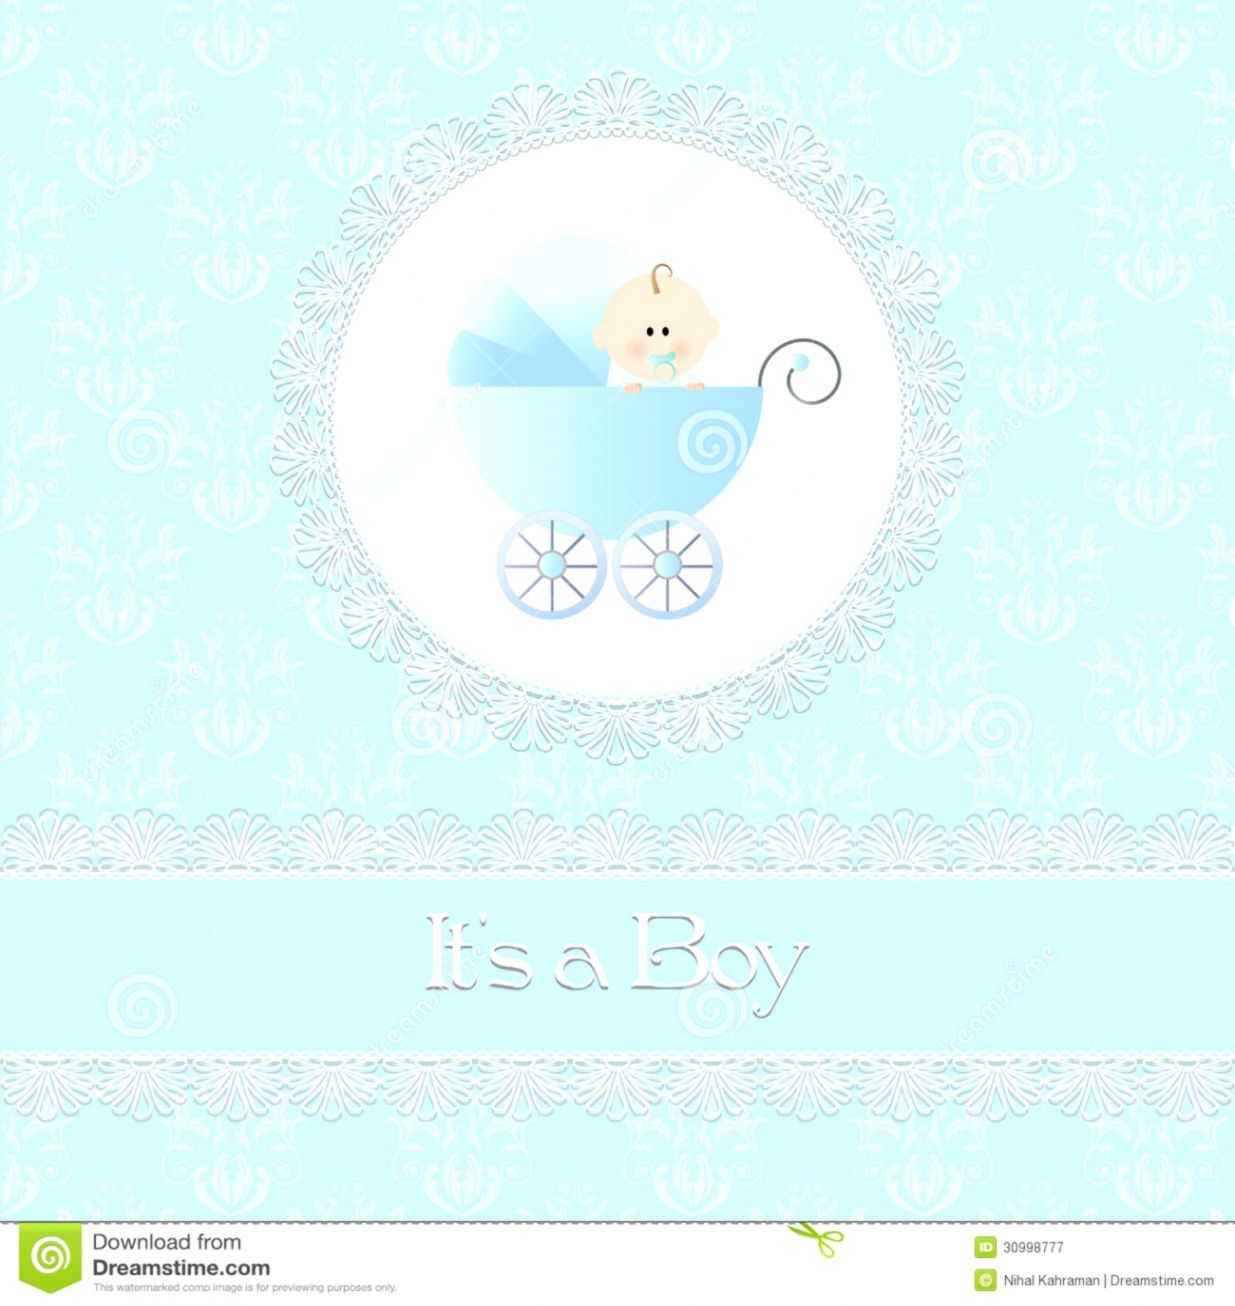 View Original Size Baby Shower Card For Boy With Stroller And